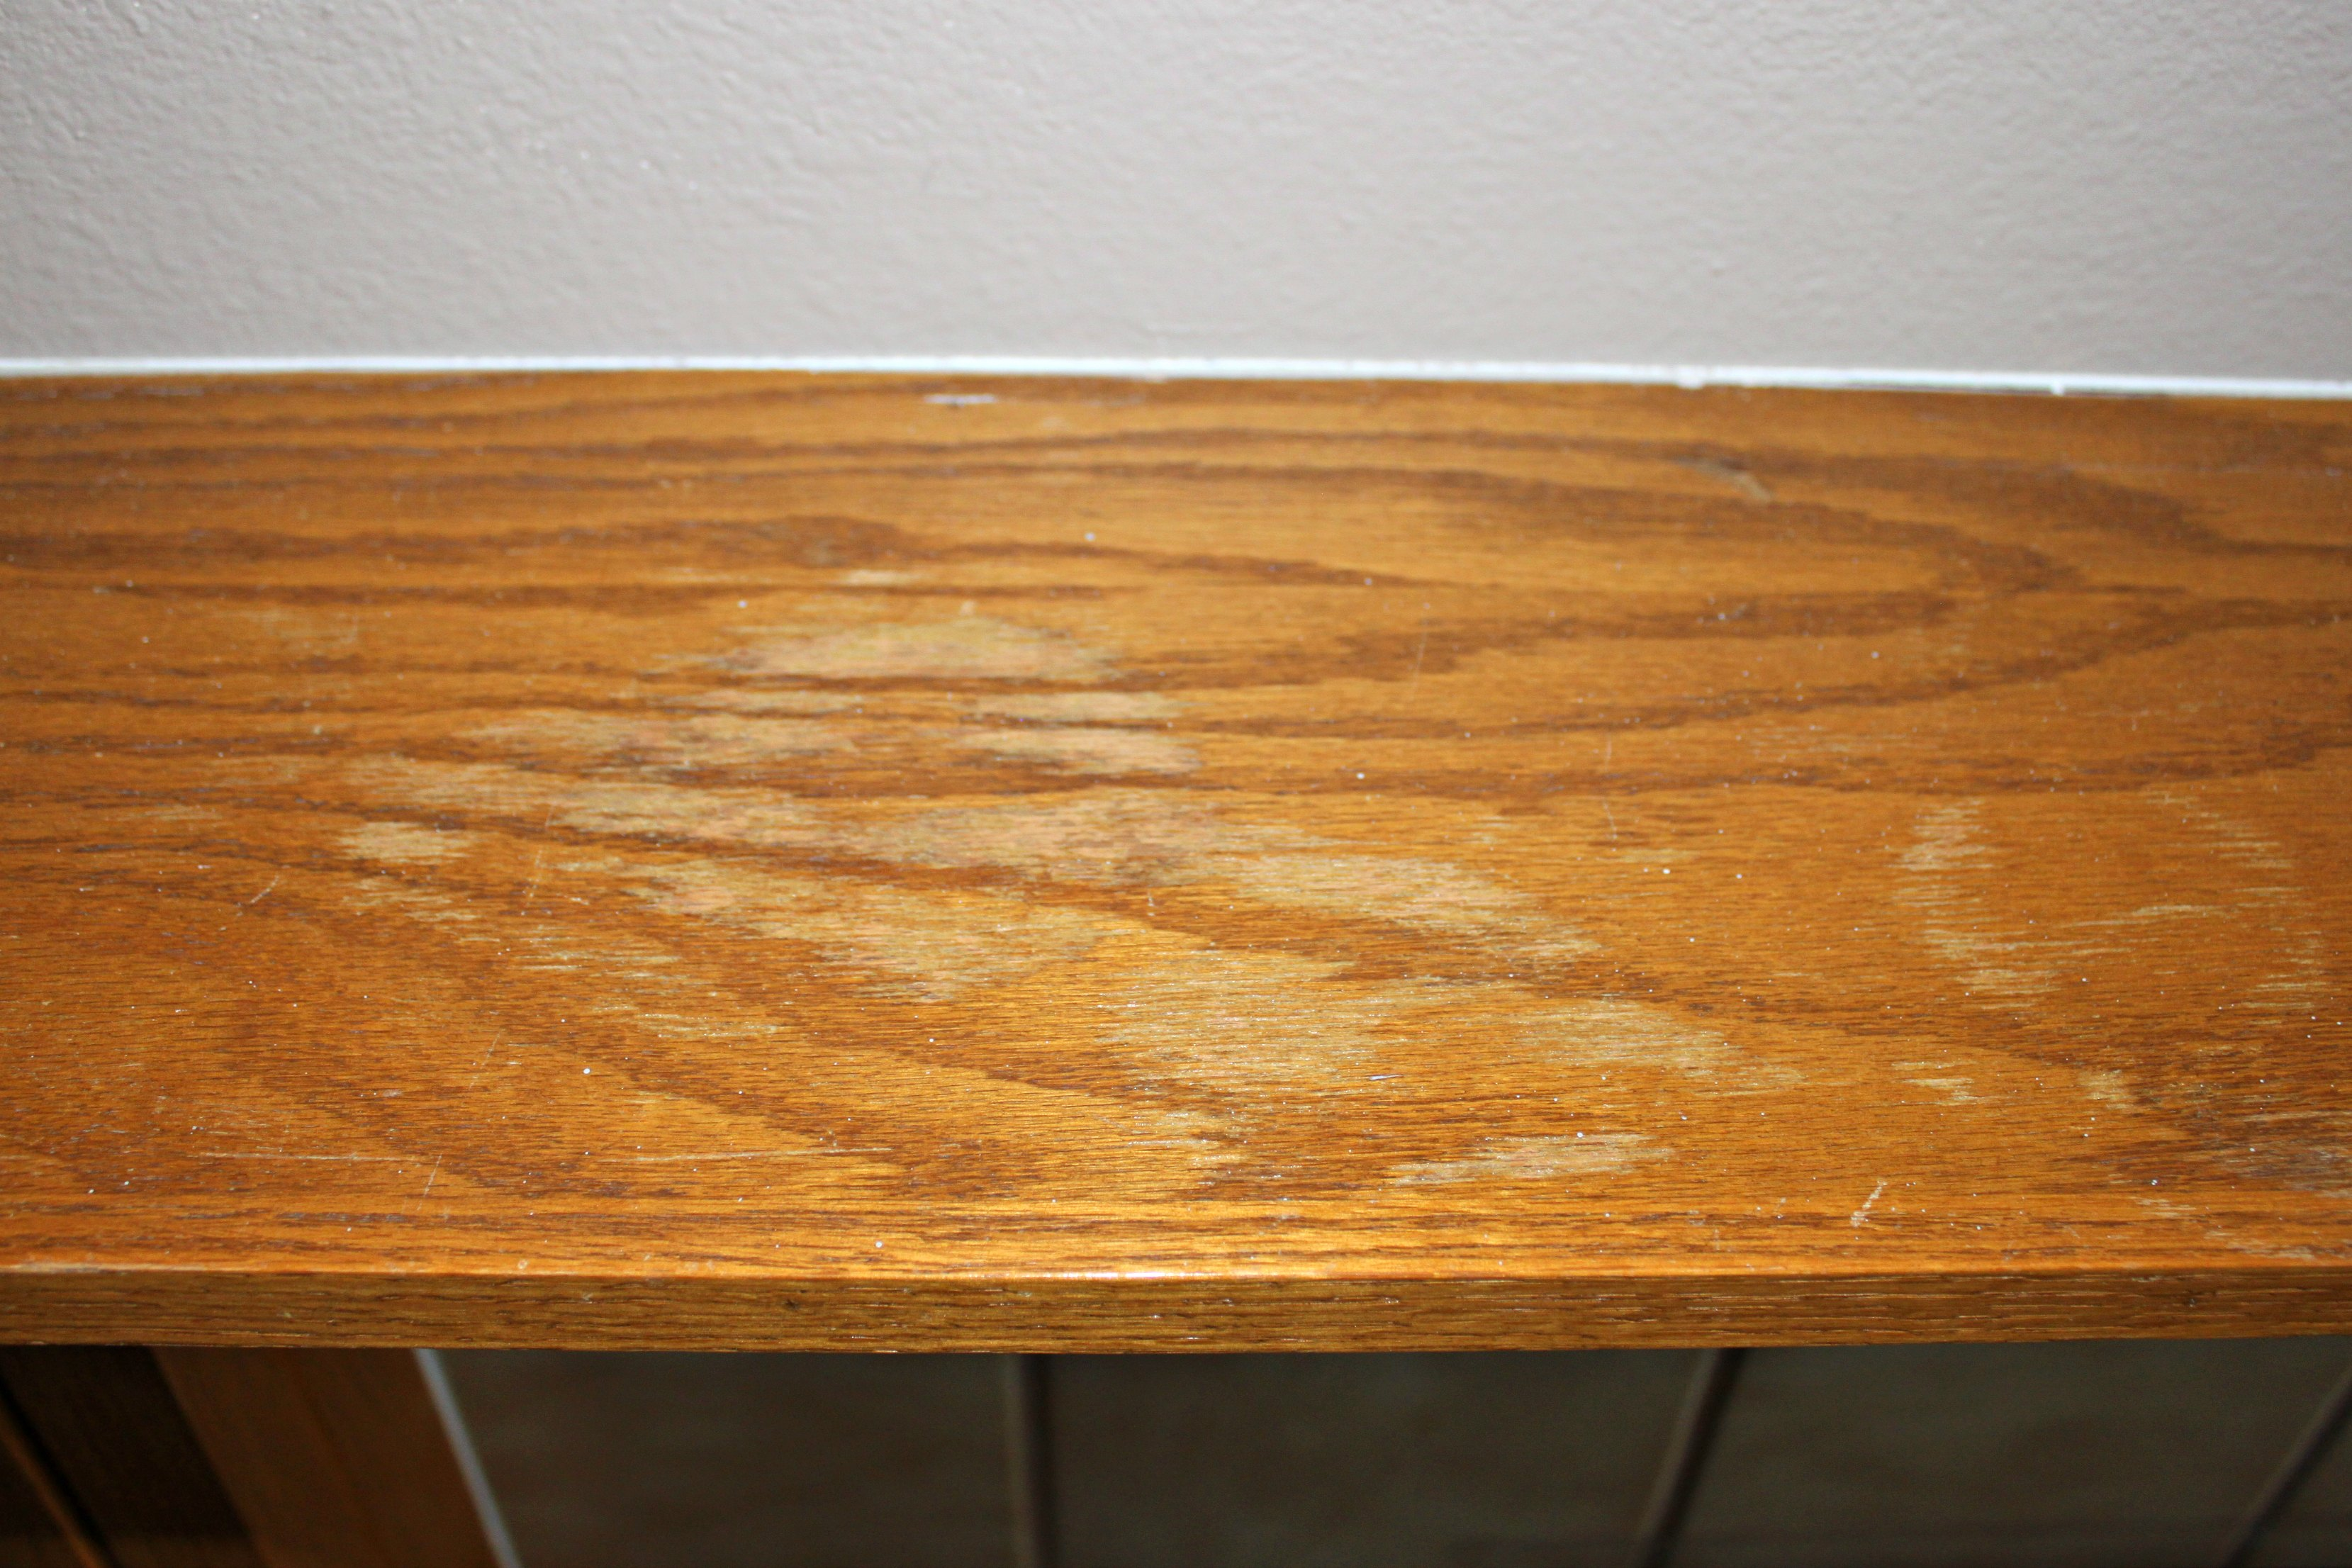 How to Remove Water Stains from Wood - Sometimes Homemade